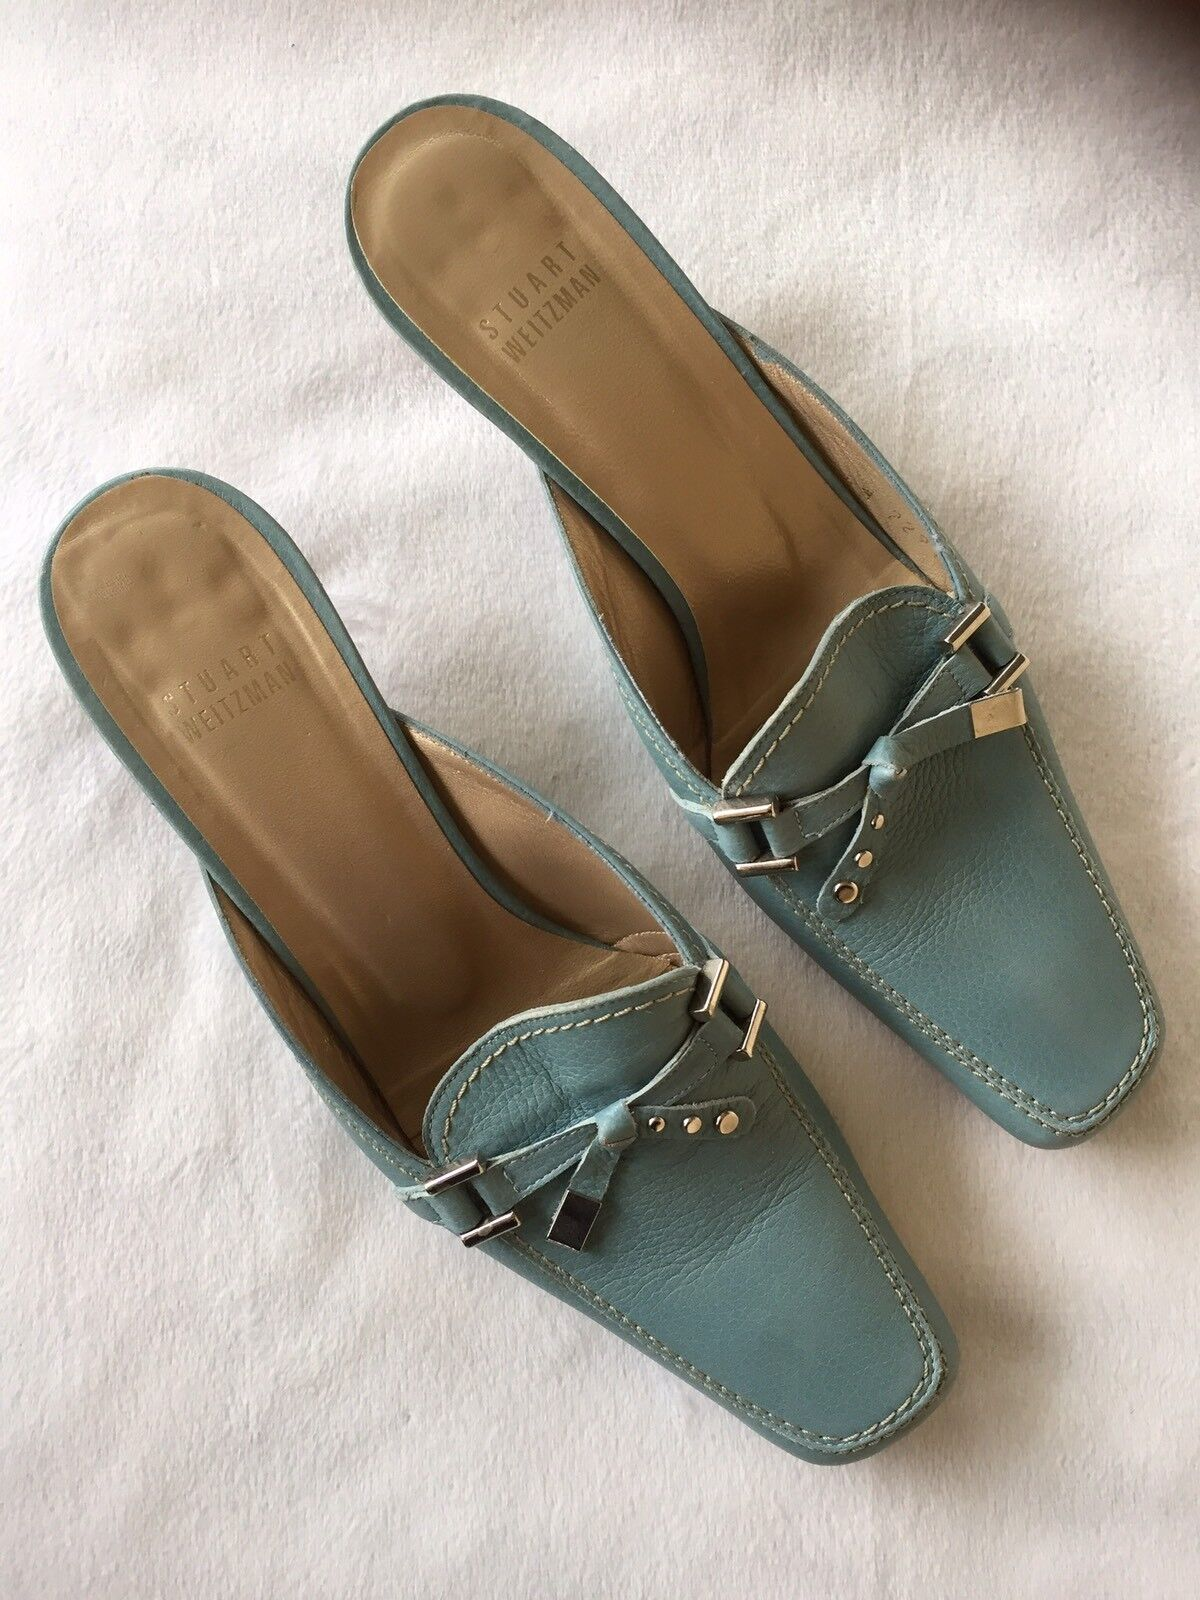 Stuart Weitzam bluee Leather Kitten Heel w  Tassel Toe Mules Size 7N